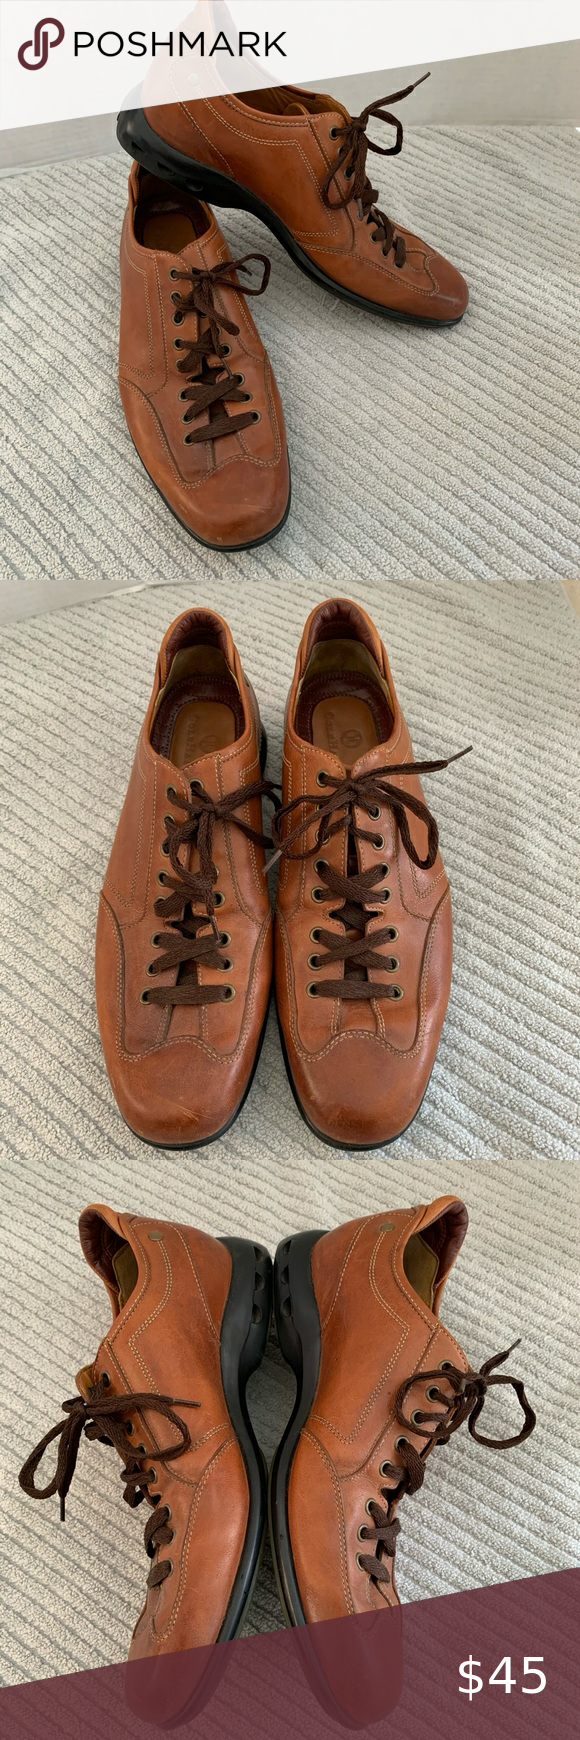 Cole Haan Nike Air Lace Up Tan Leather